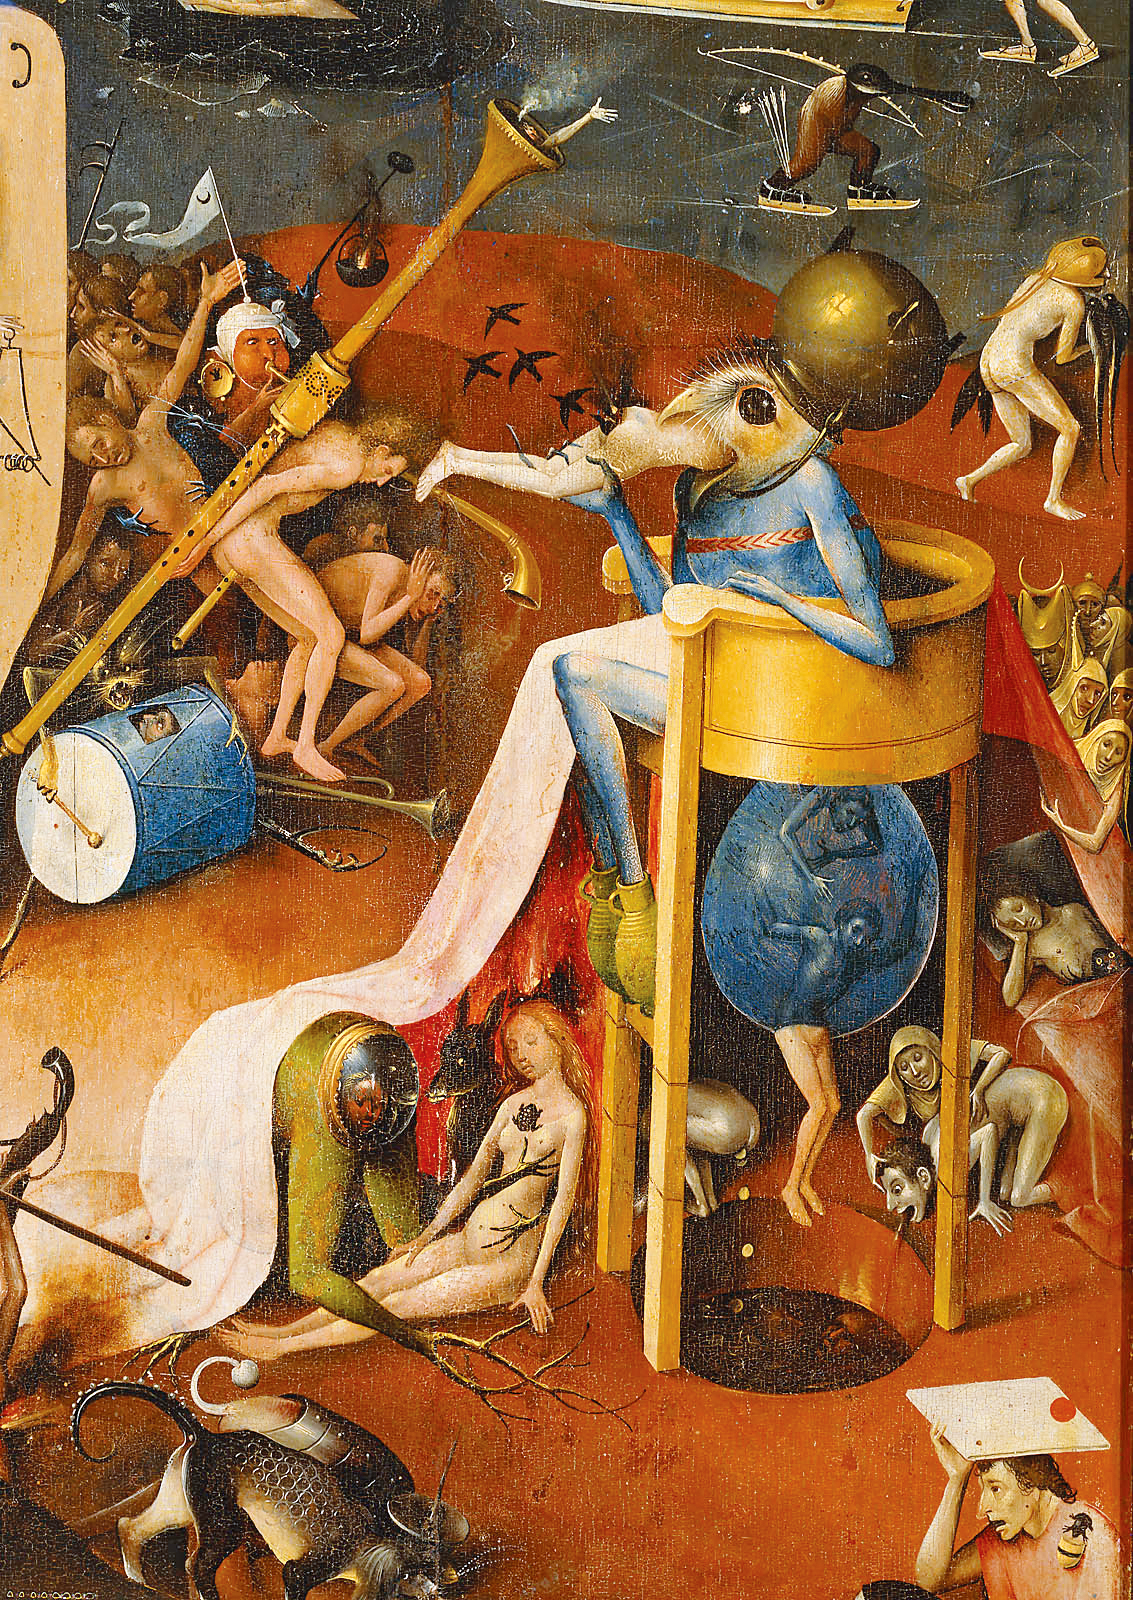 Hell (detail), from The Garden of Delights, by Hieronymus Bosch, c. 1480. Prado Museum, Madrid.